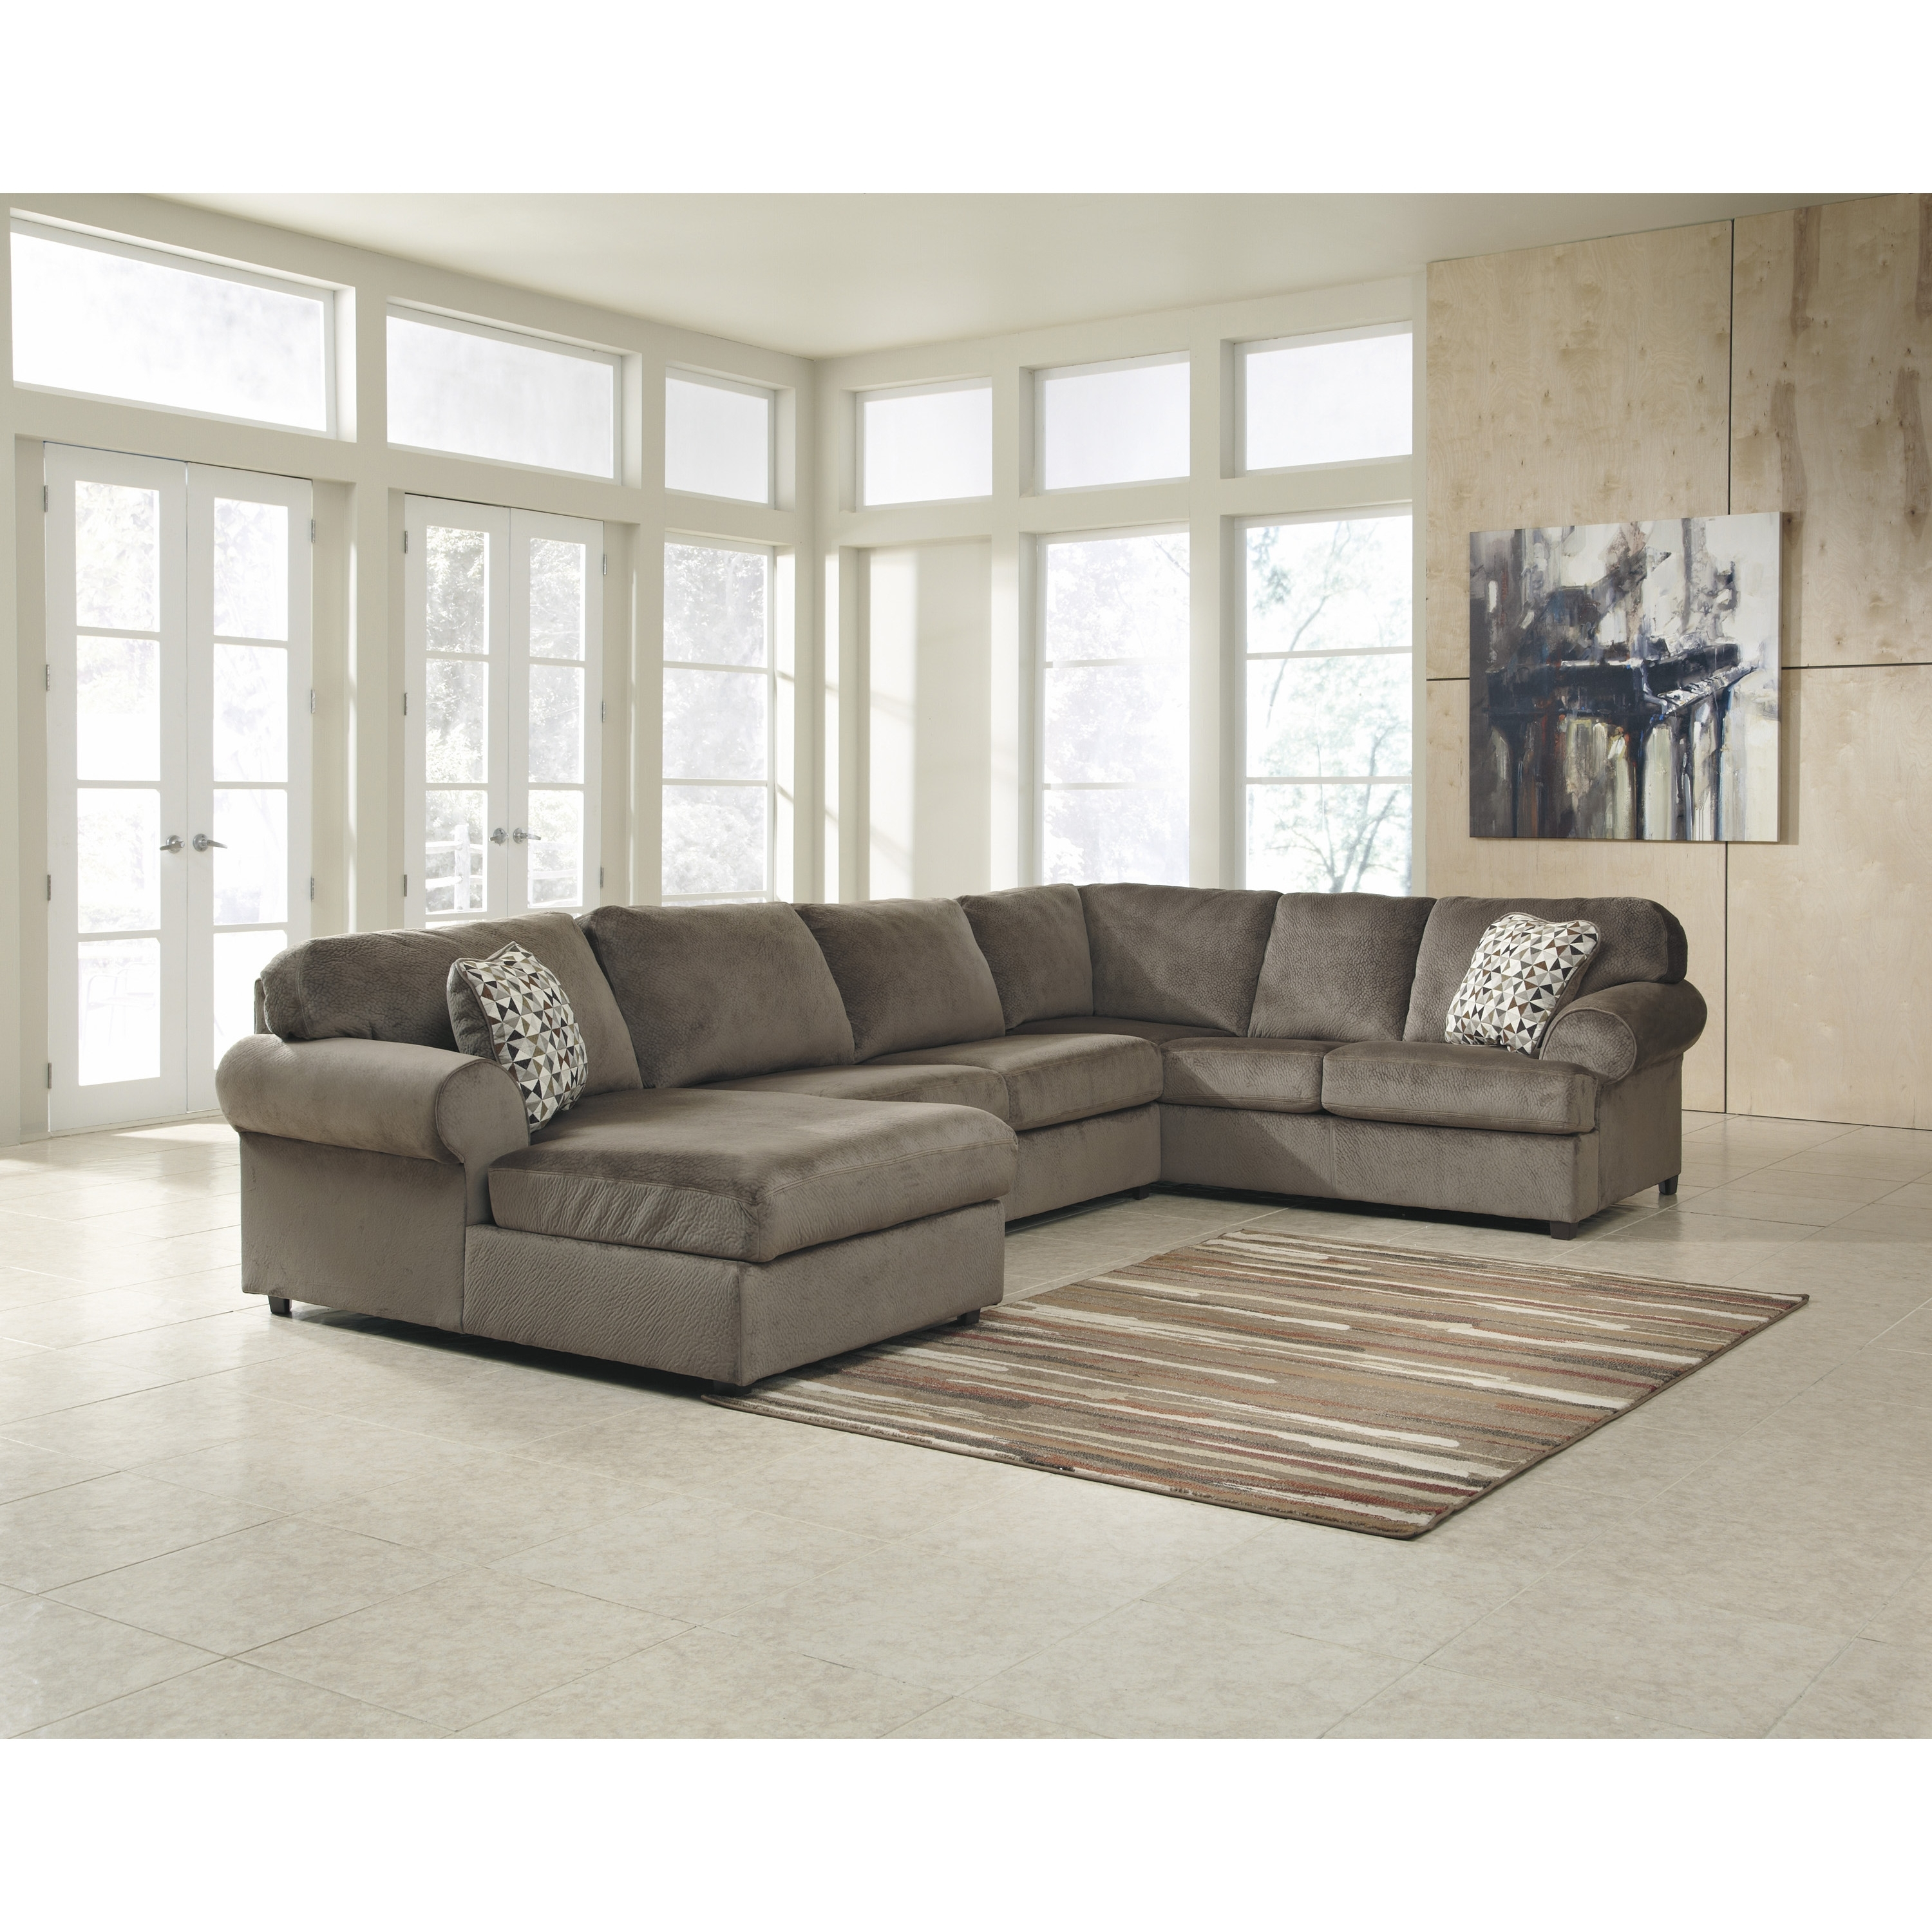 Well Liked Awesome Dark Brown Wood Cool Design Furniture Comfortable Living Inside Wayfair Sectional Sofas (View 18 of 20)